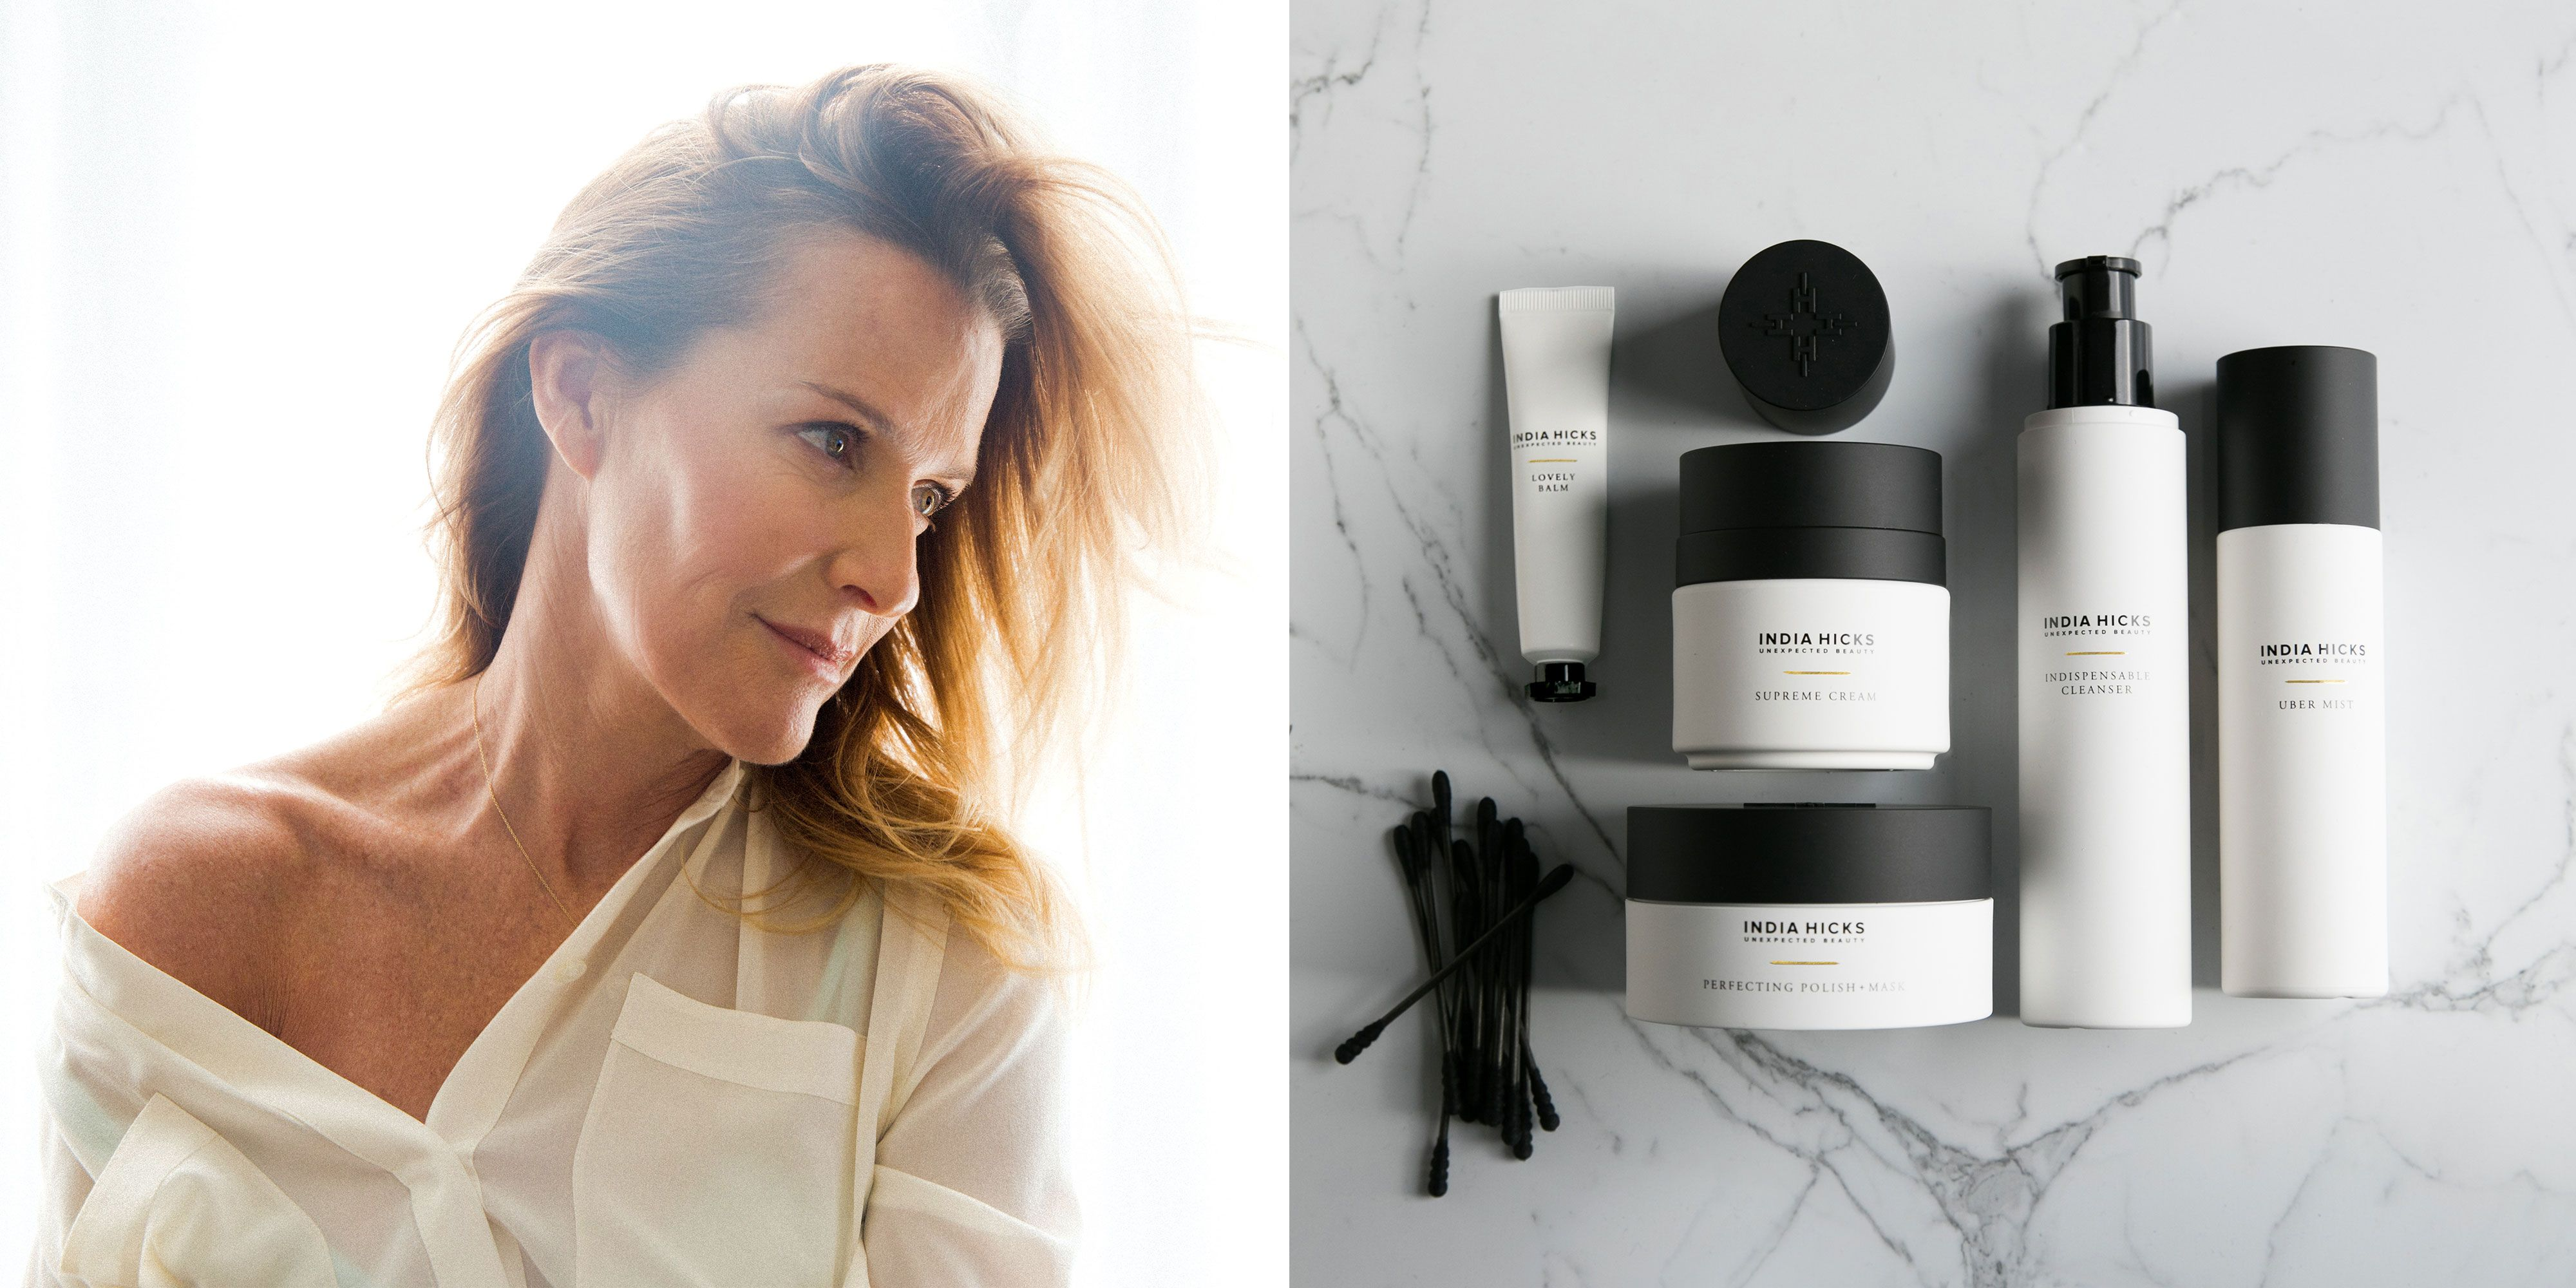 India Hicks Beauty Line